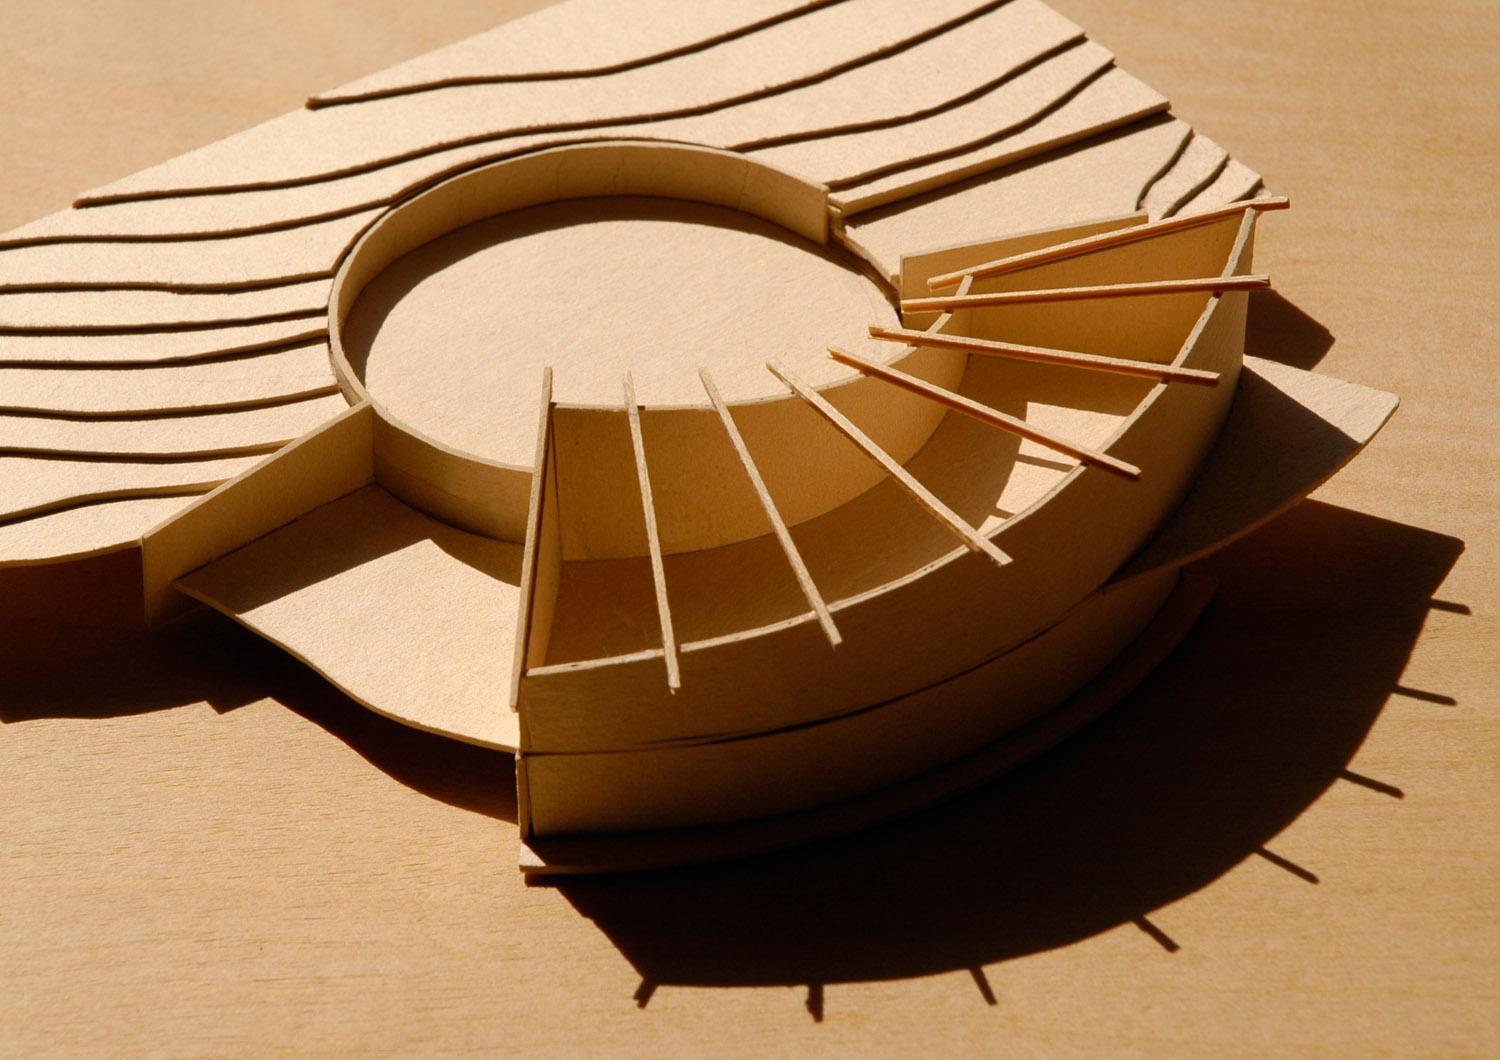 A very early model studying the basic ideas of the design: house shape, roof warp, courtyard and siting.